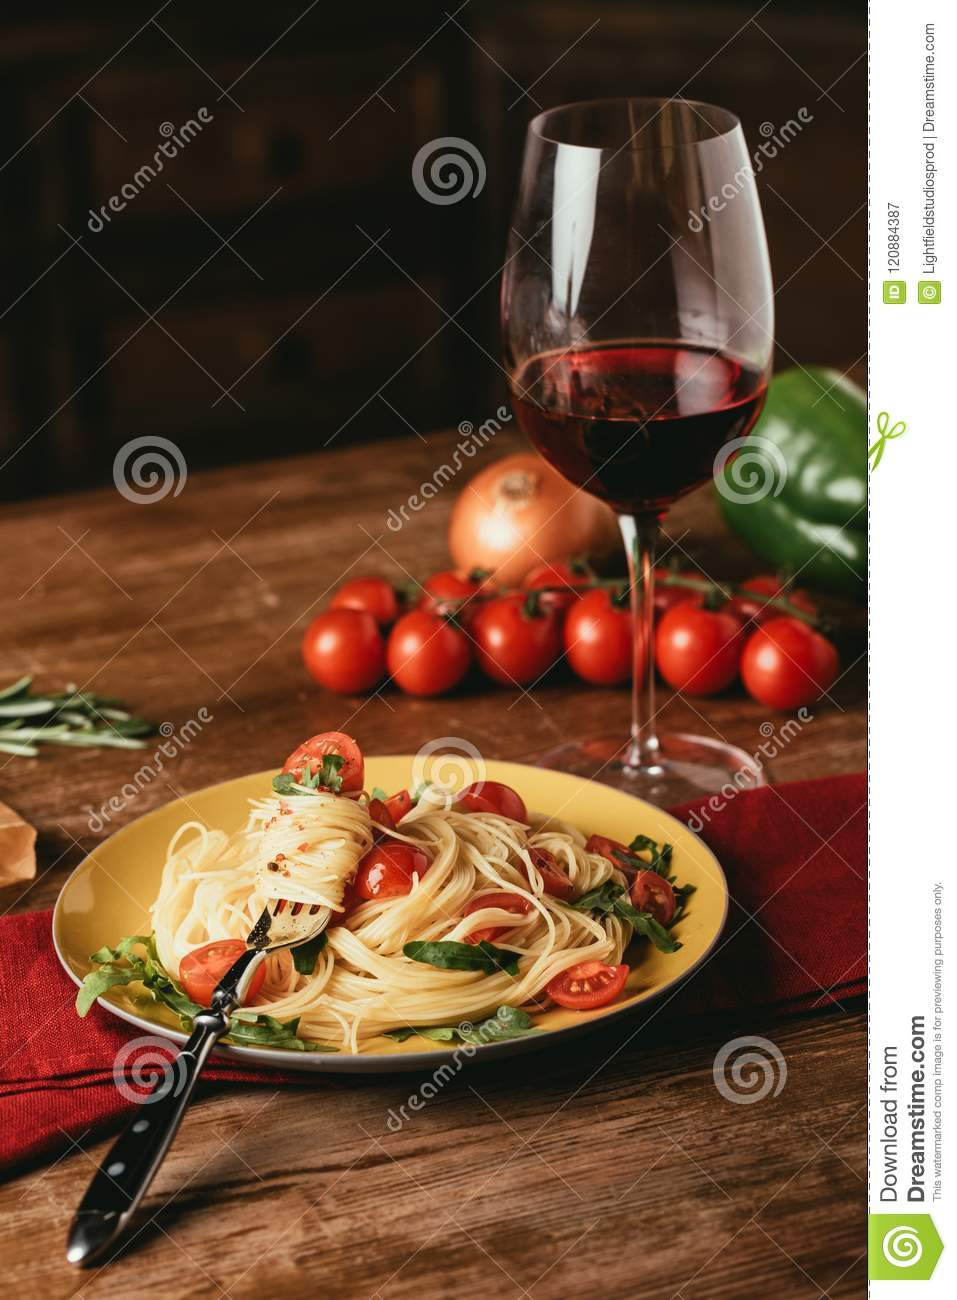 traditional italian pasta with tomatoes and arugula in plate and glass of